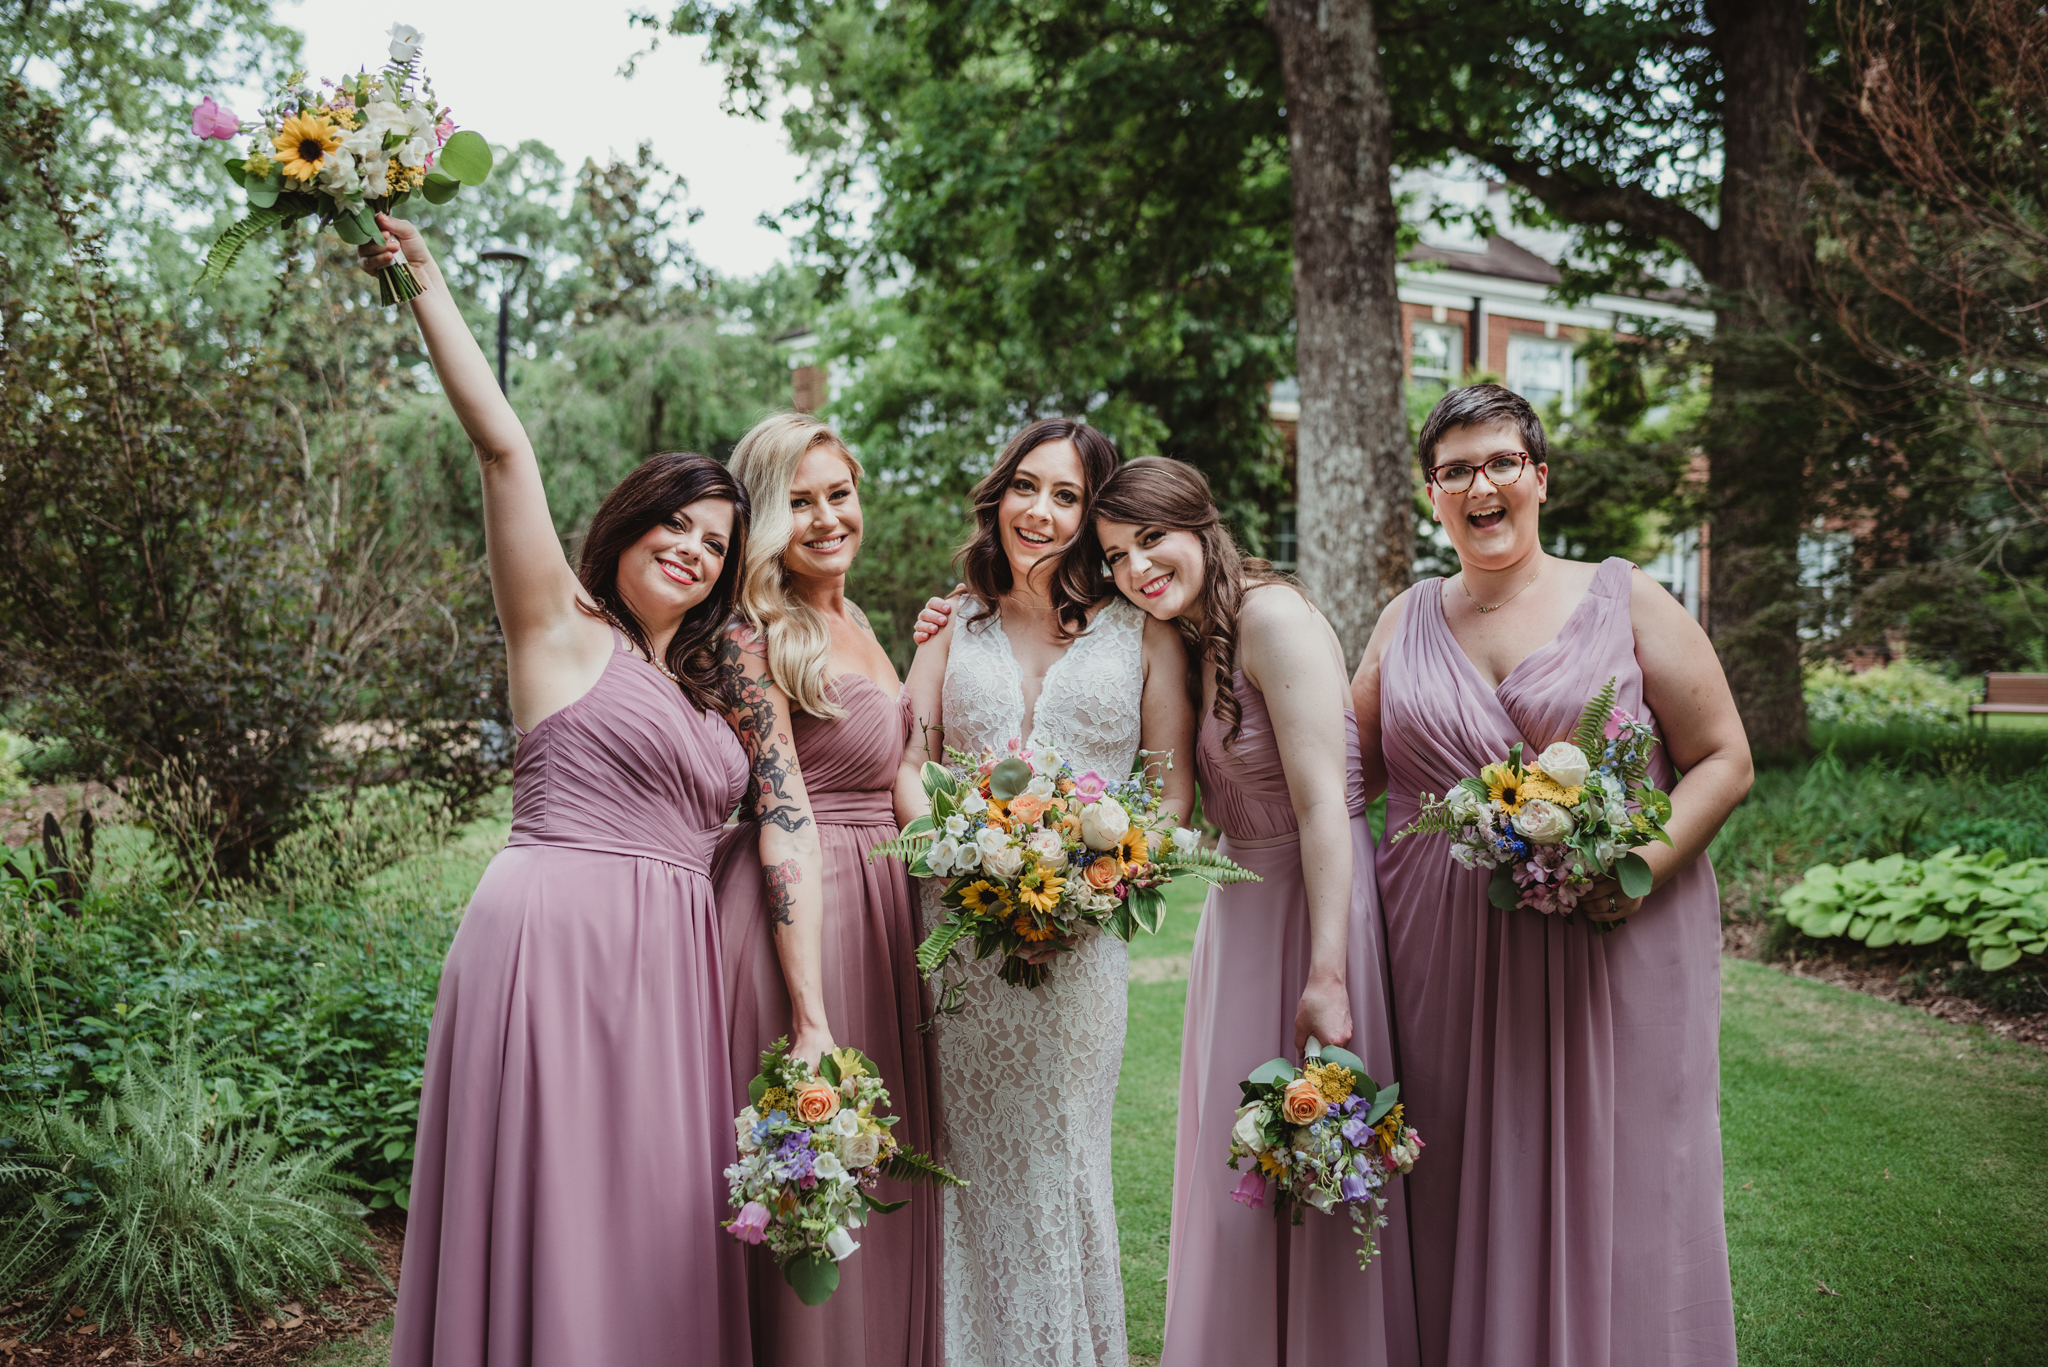 Raleigh-wedding-photographer-bride-with-her-bridesmaids-fred-fletcher-rose-trail-images.jpg